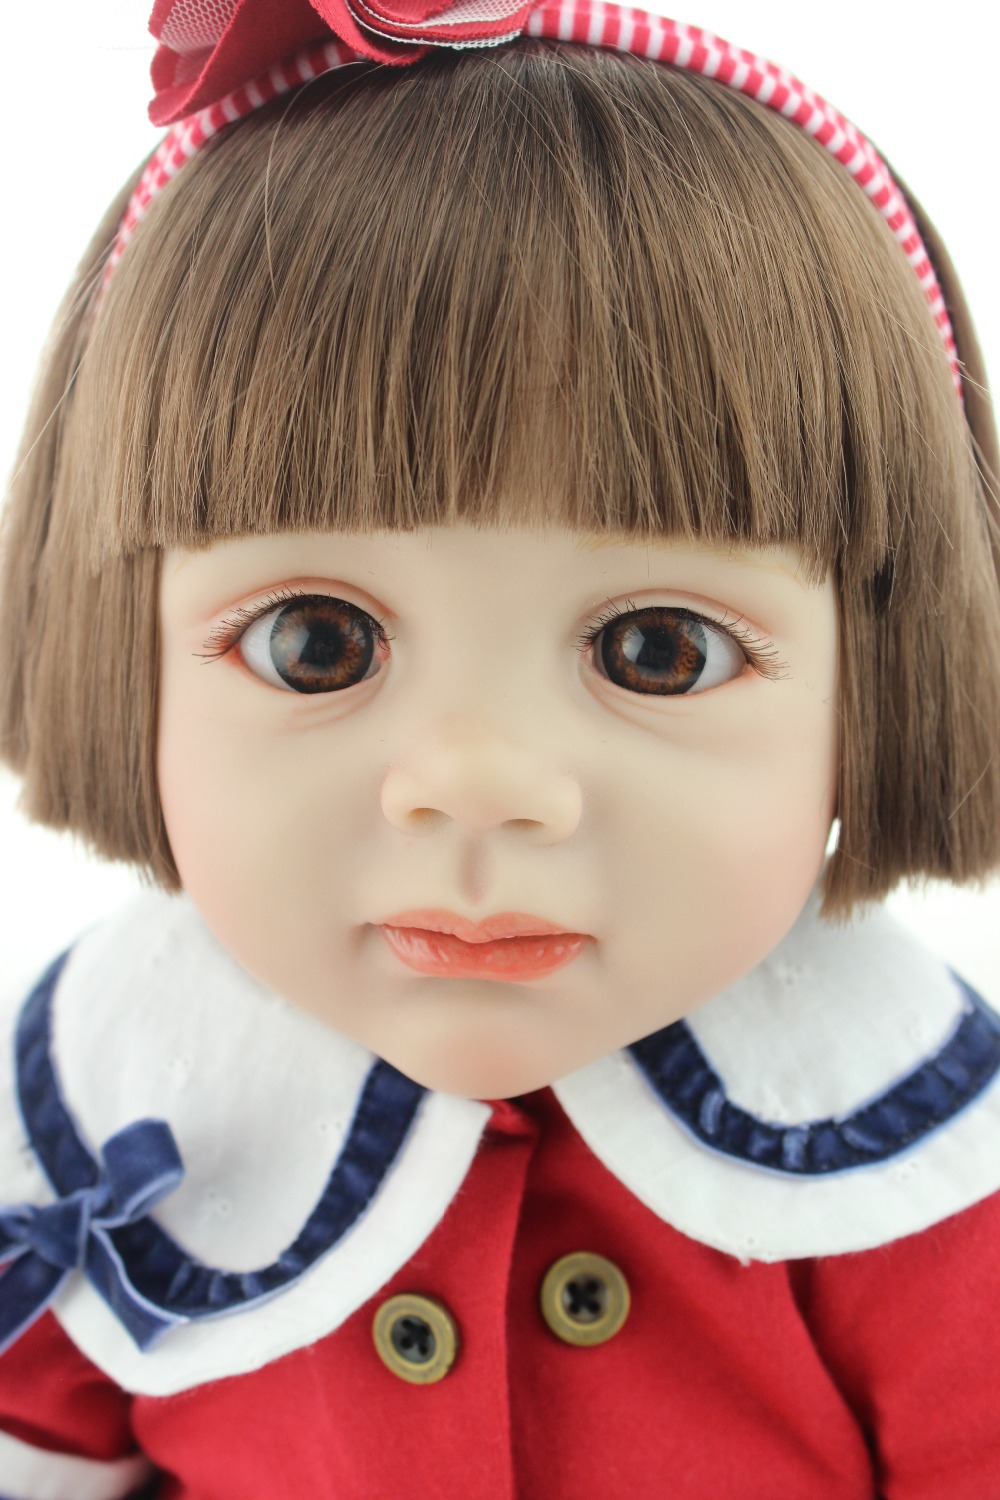 2015 NEW realistic  reborn baby doll rooted human hair fashion doll Christmas gift old gift 2015 new design soft silicone reborn baby doll rooted human hair fashion doll christmas gift